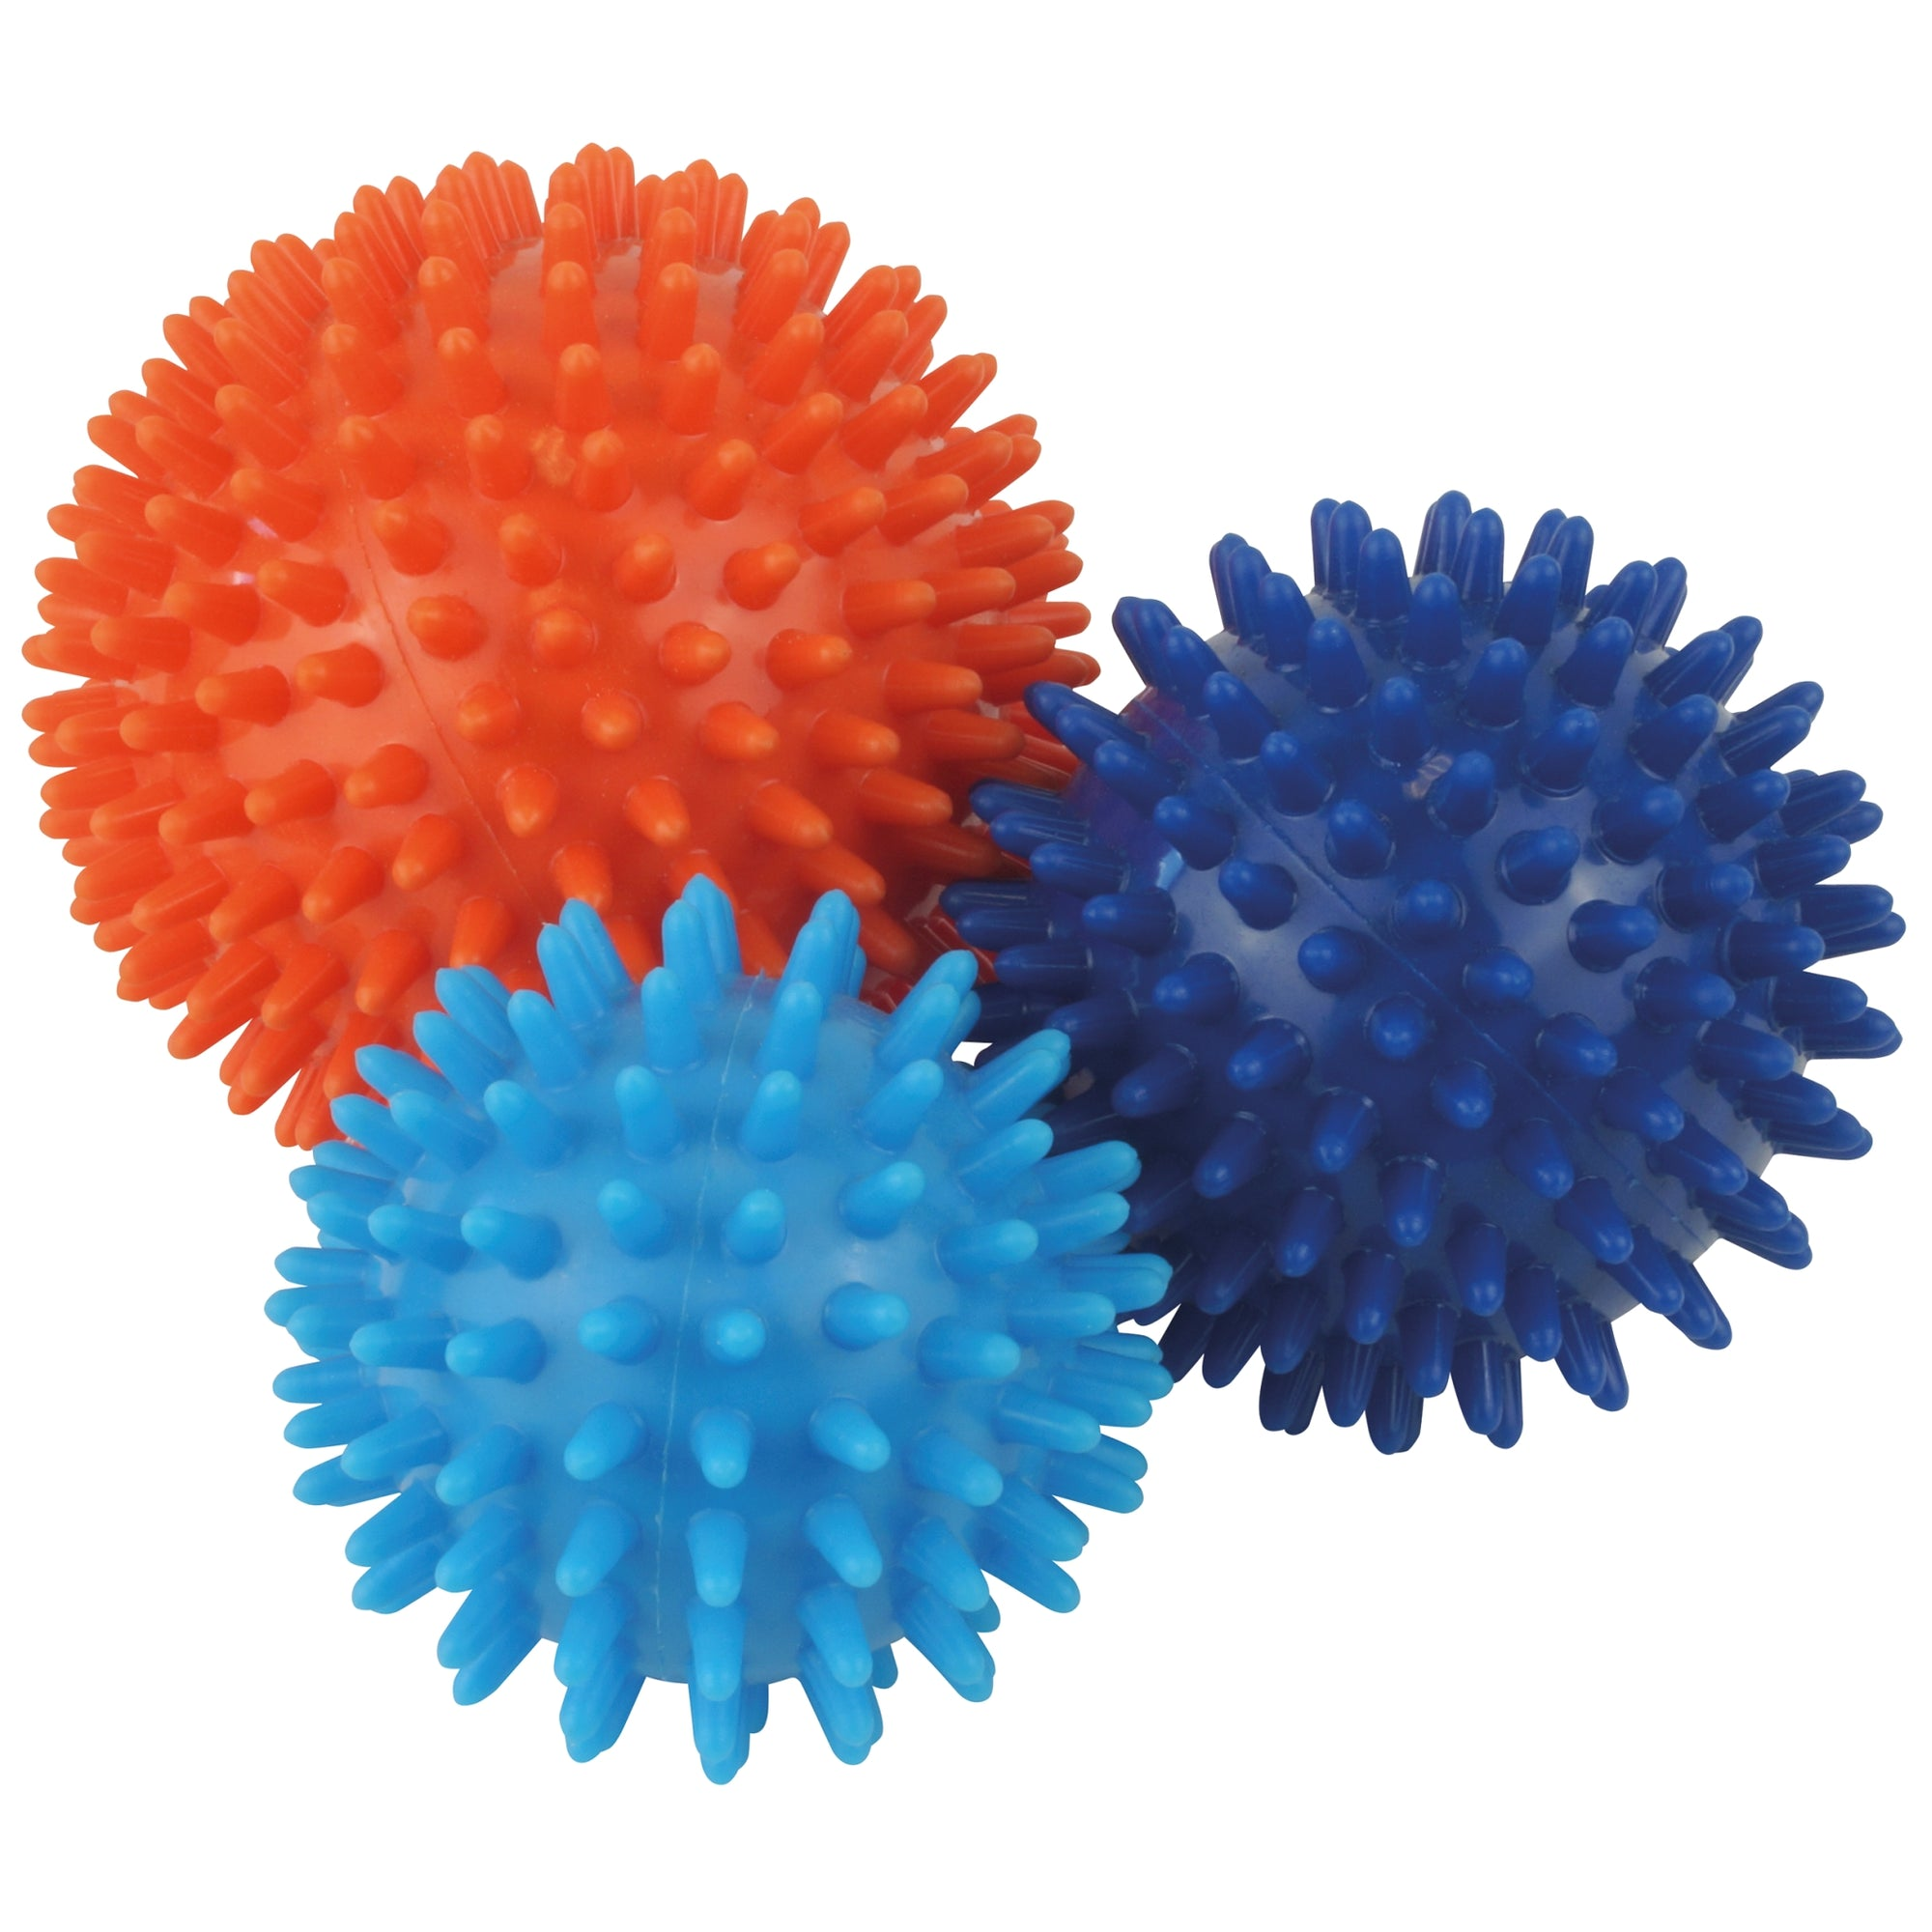 UFE Spiky Massage Balls Set. Large red ball, dark blue mid size and small light blue spiky ball